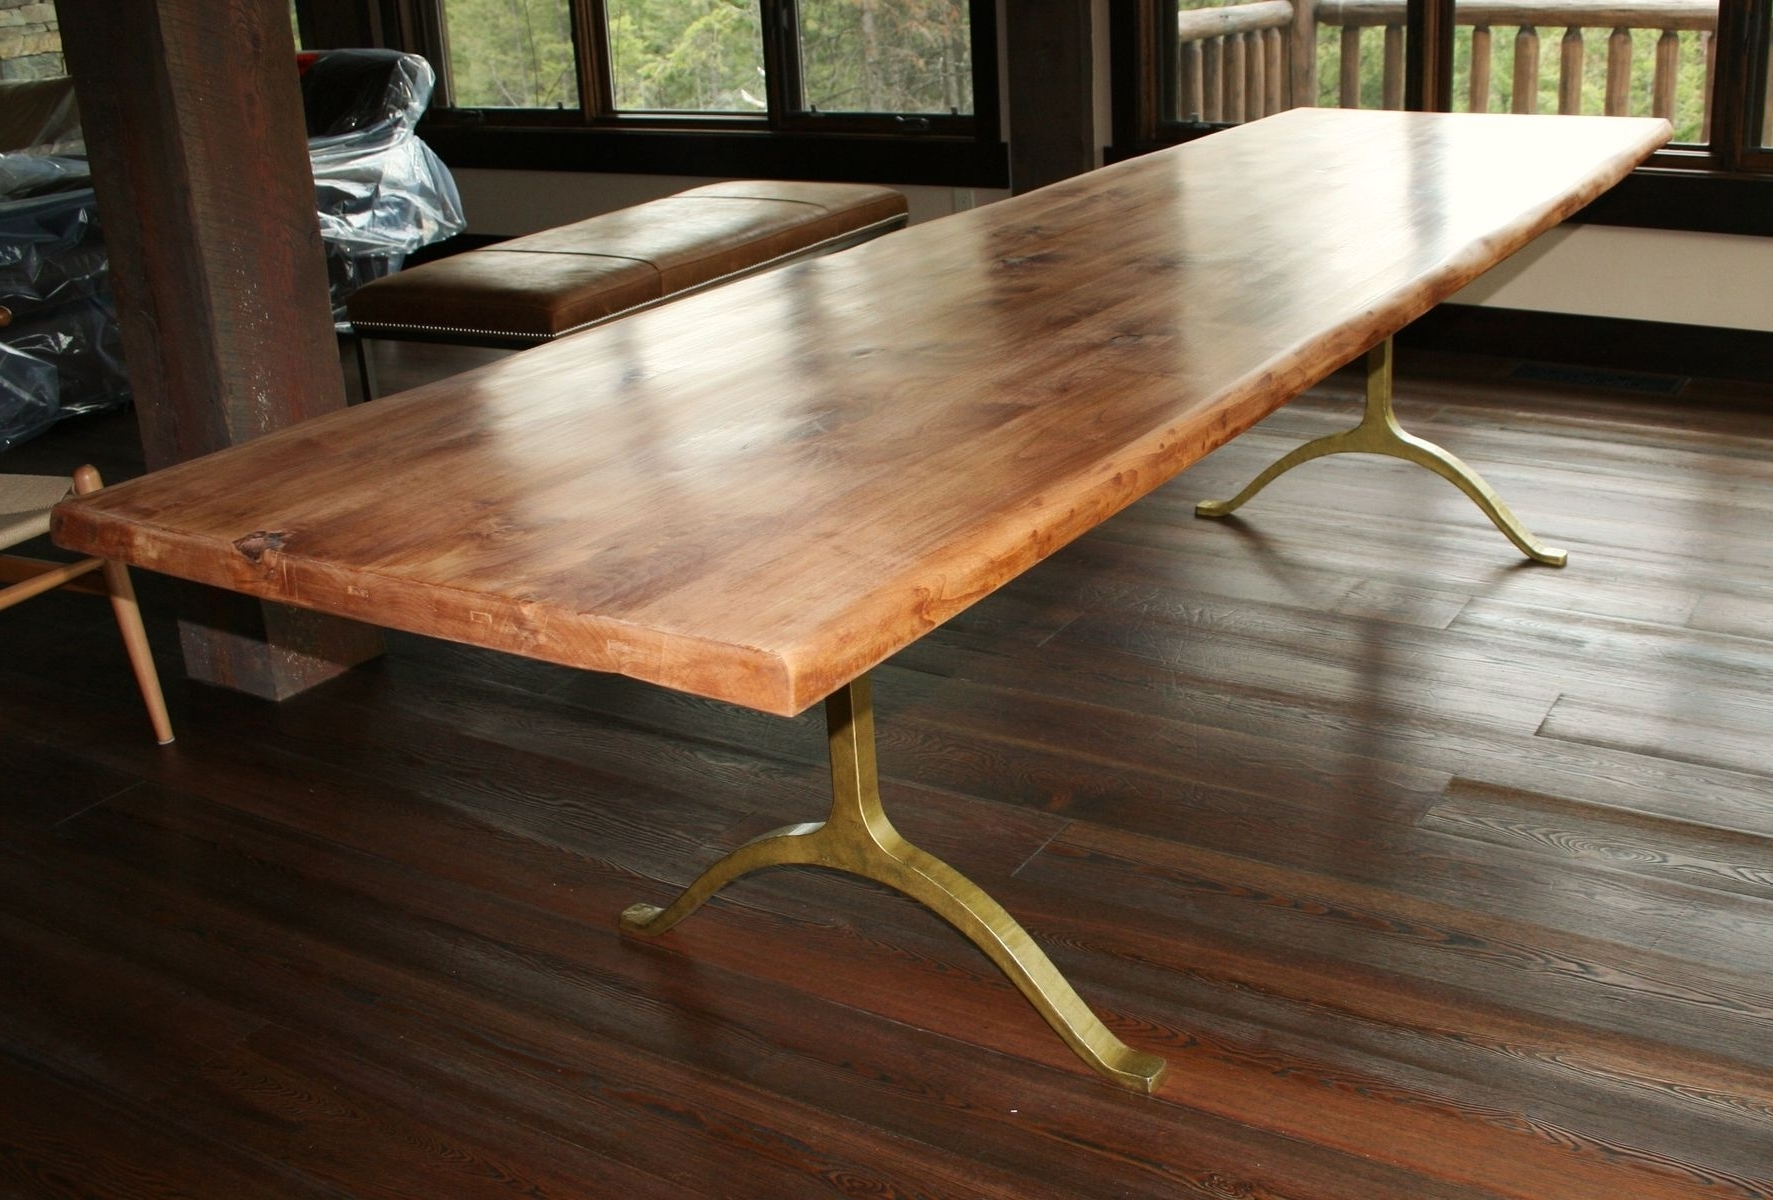 Rustic Dining Tables Pertaining To 2018 Handmade Rustic Dining Tableecho Peak Design (View 7 of 25)